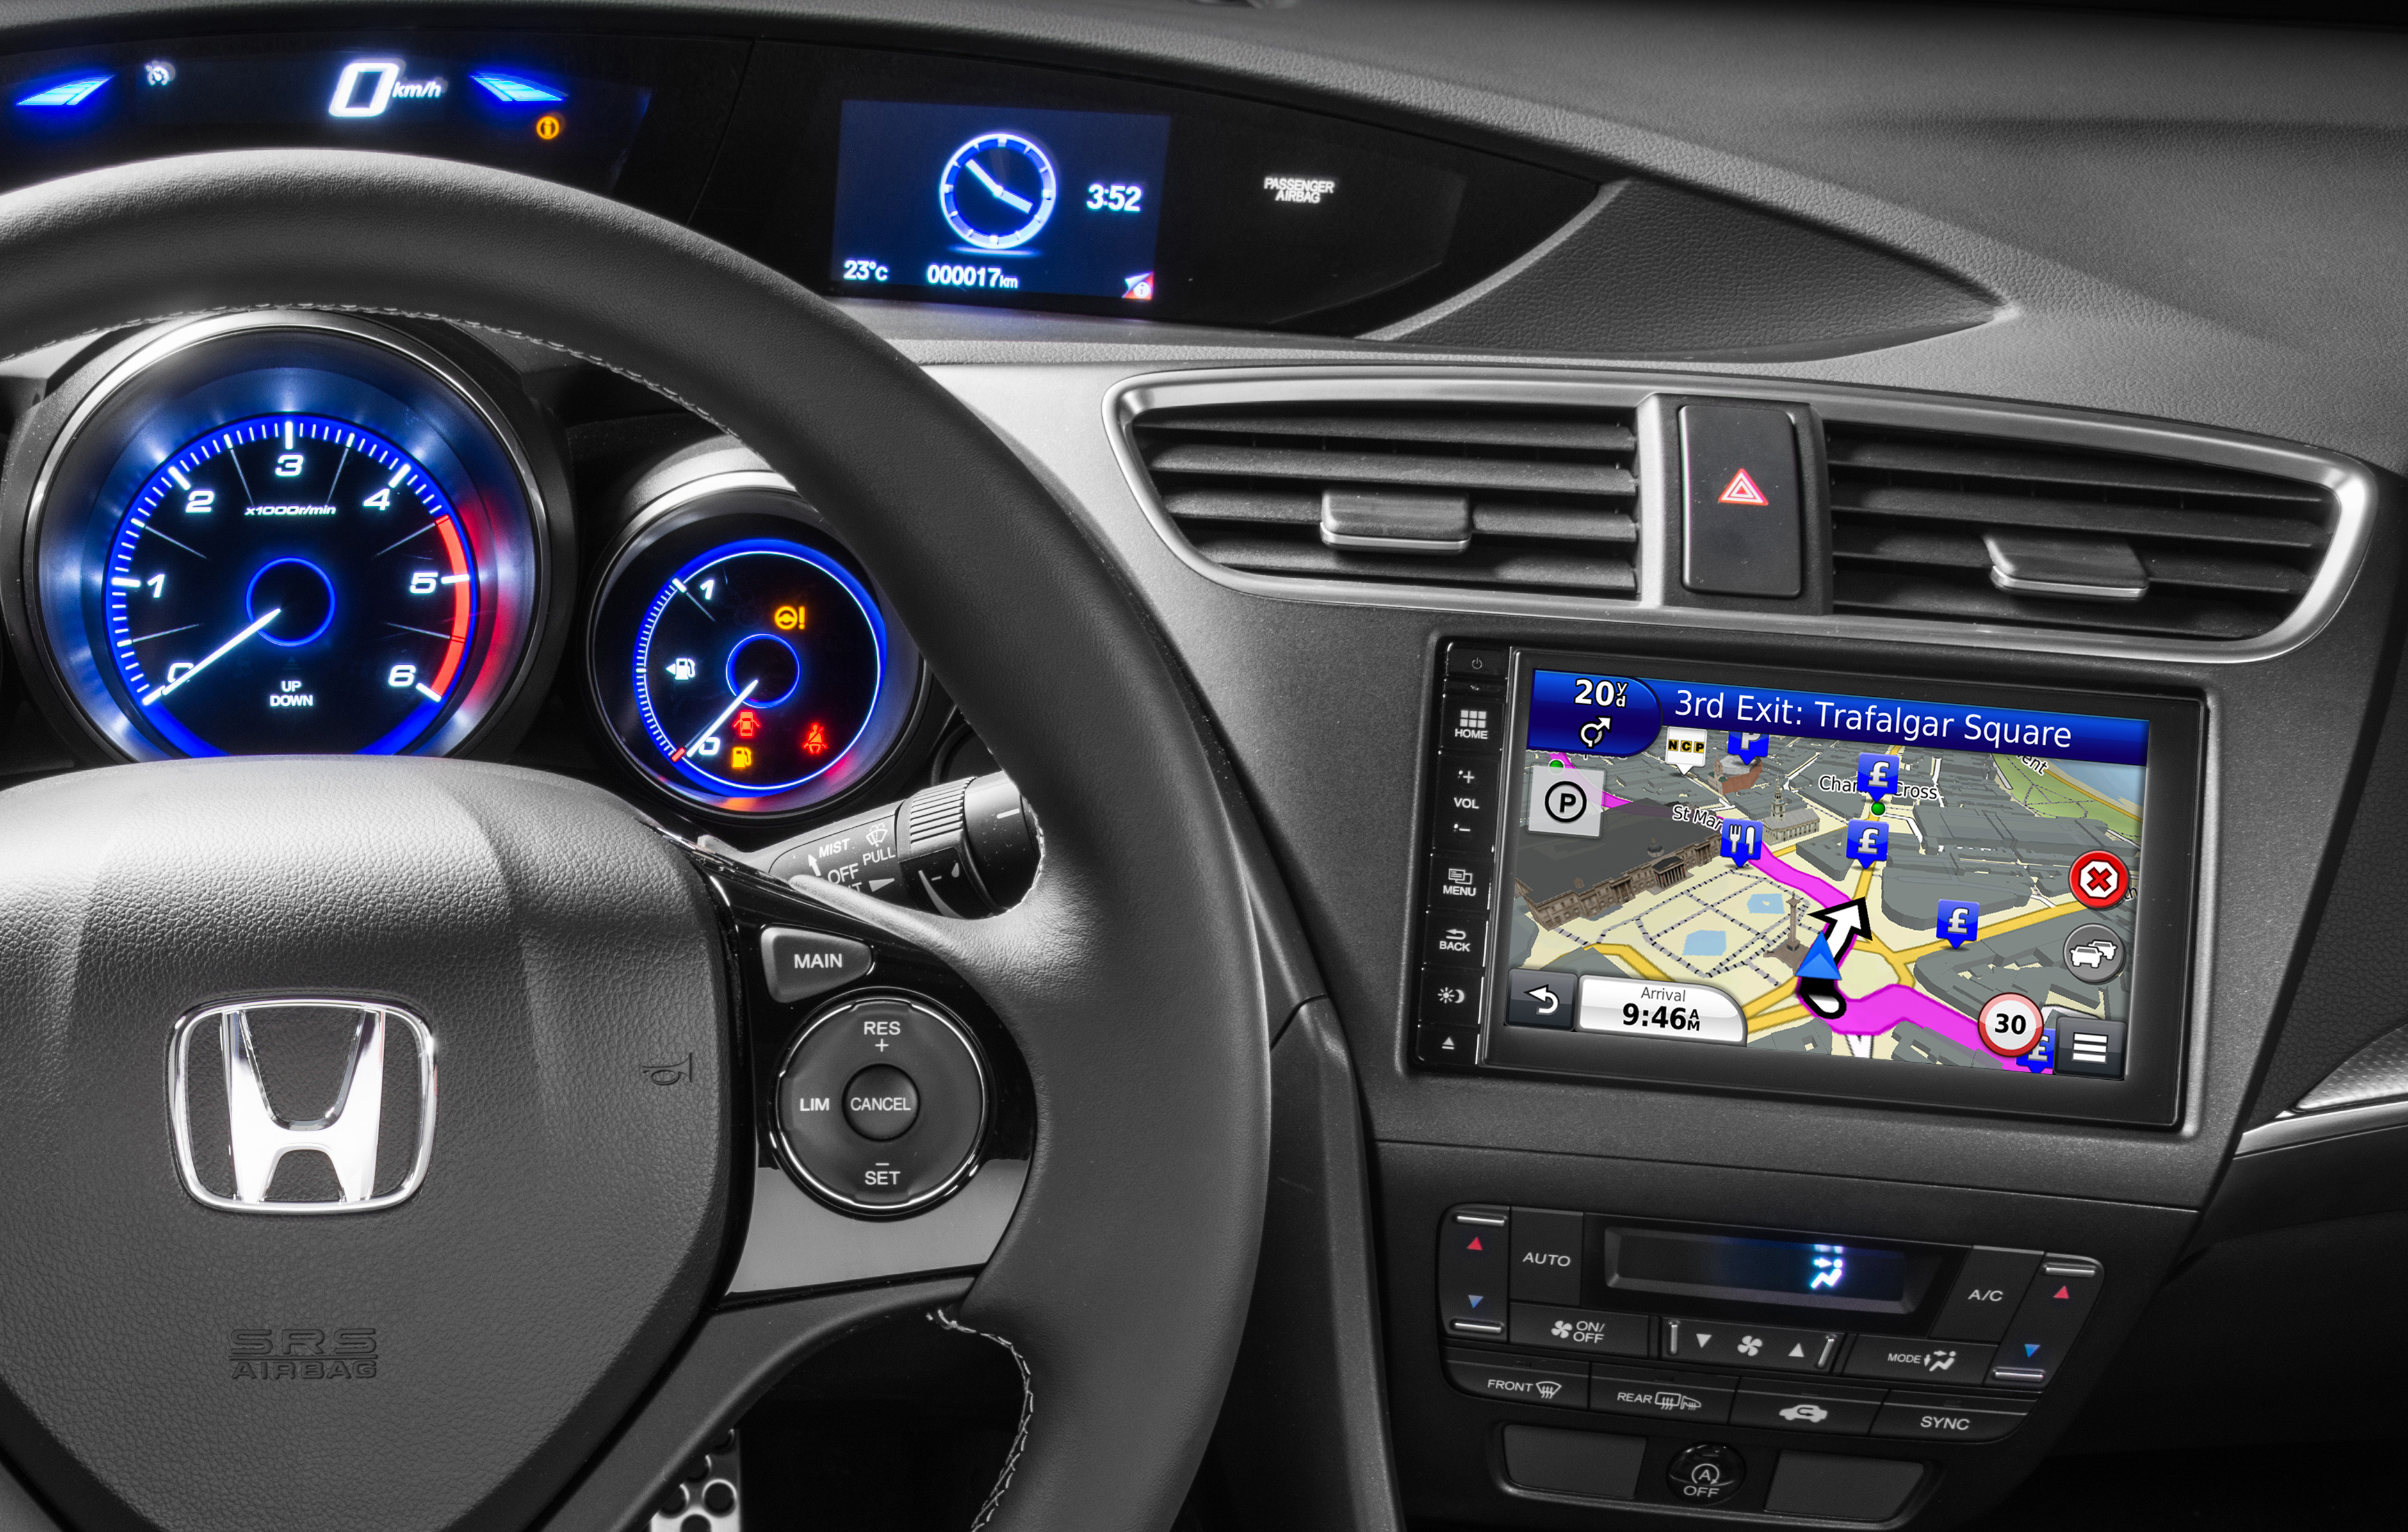 garmin to provide in dash navigation for honda civic and cr v models in europe russia and. Black Bedroom Furniture Sets. Home Design Ideas